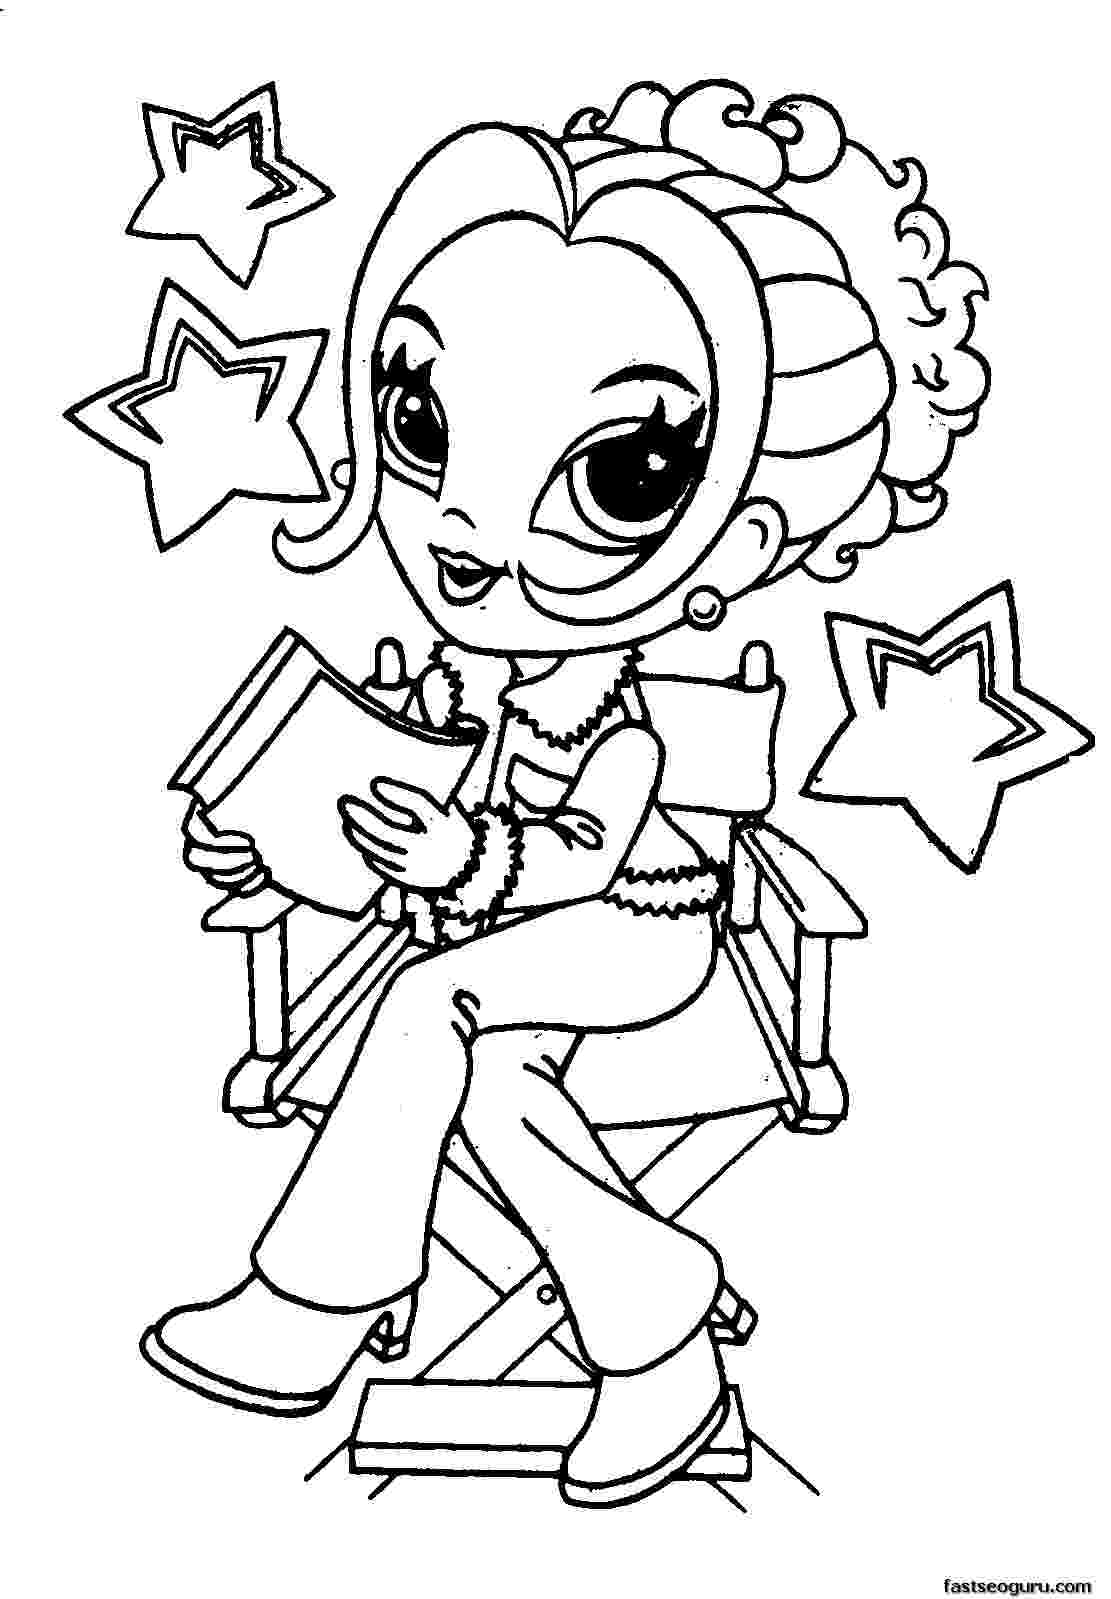 printable colouring pages for girls cute girl coloring pages to download and print for free printable girls for colouring pages